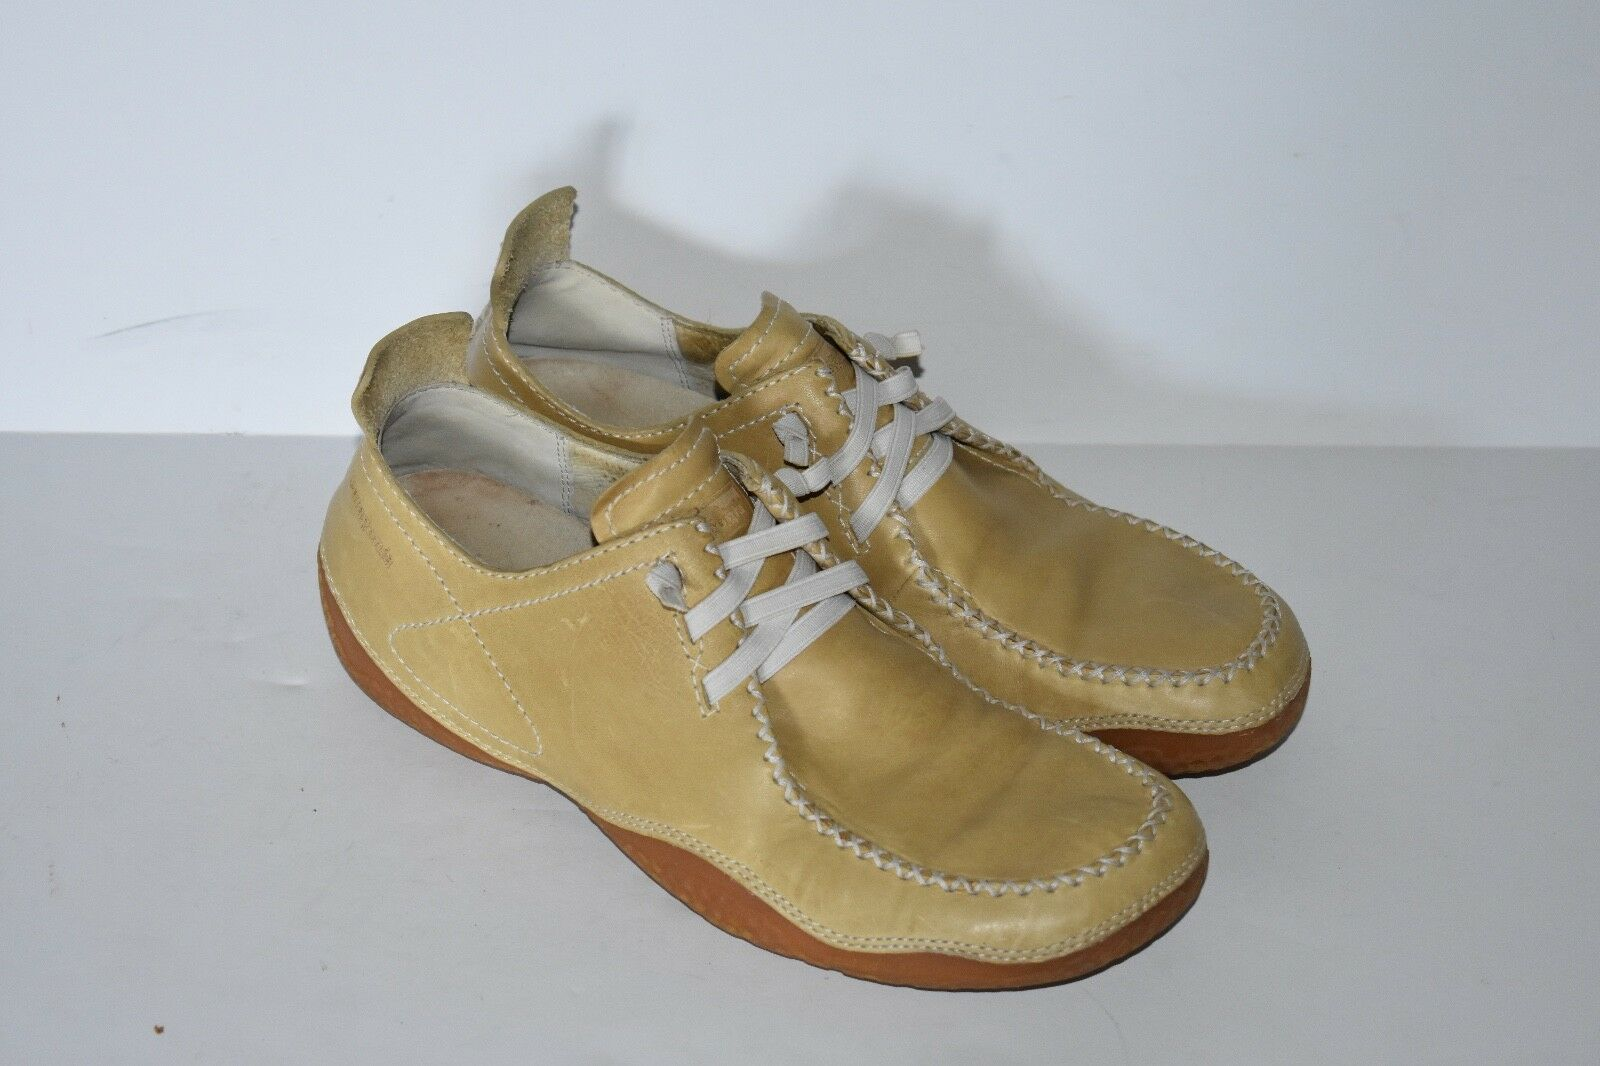 Patagonia Honeydew Sand femmes Lace Up Up Up Leather Walking chaussures Taille 9.5 e67b9b